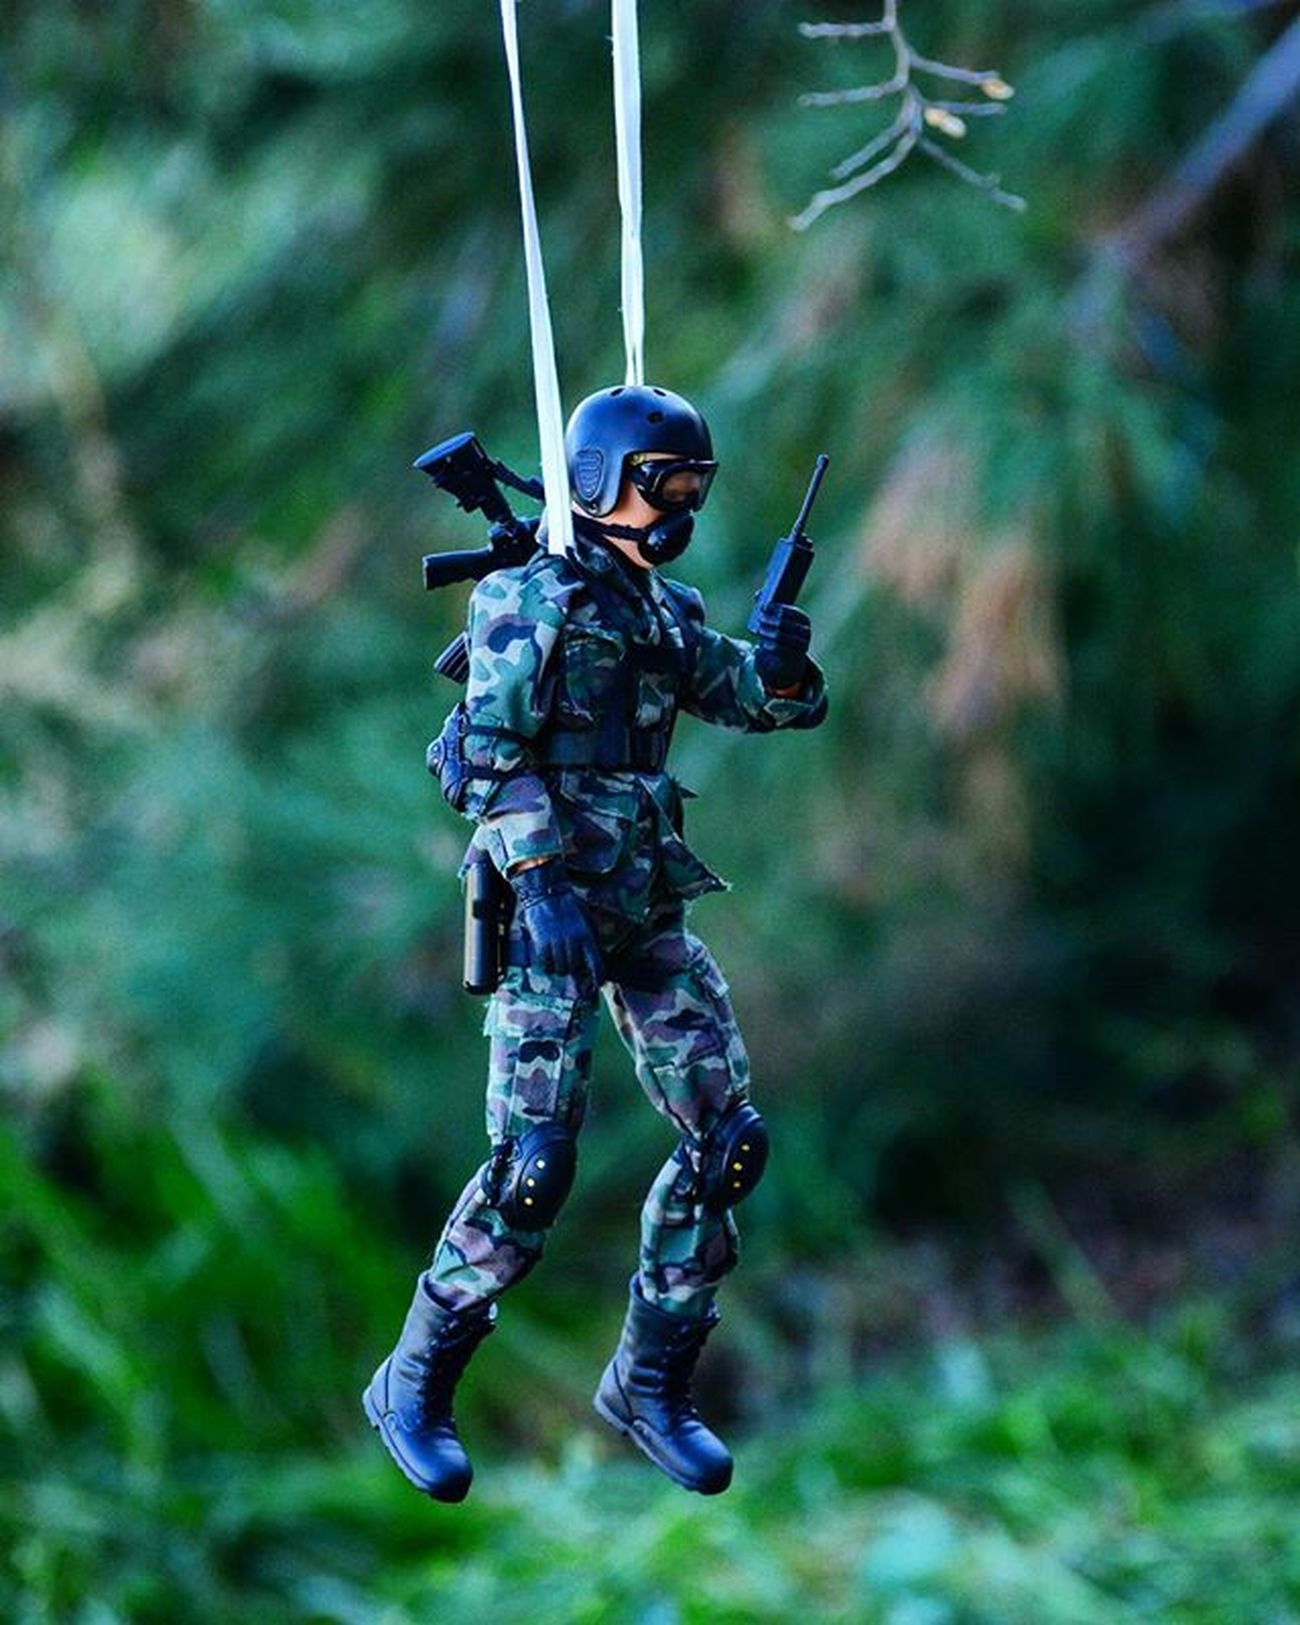 Hang in there...it's only Monday. Toyonlocation Toy_nerds 12inchtoy Worldpeacekeepers Peacekeepers TeamElite Paratrooper Parashooter Parashoot CaseOfTheMondays Stuck Toycrewbuddies Teamnikon Toygroup_alliance Toystagram Toyart Toypictures Arizona Toyphotography Toyboners Toyoutsiders Toydiscovery Camoflauge Military Toys